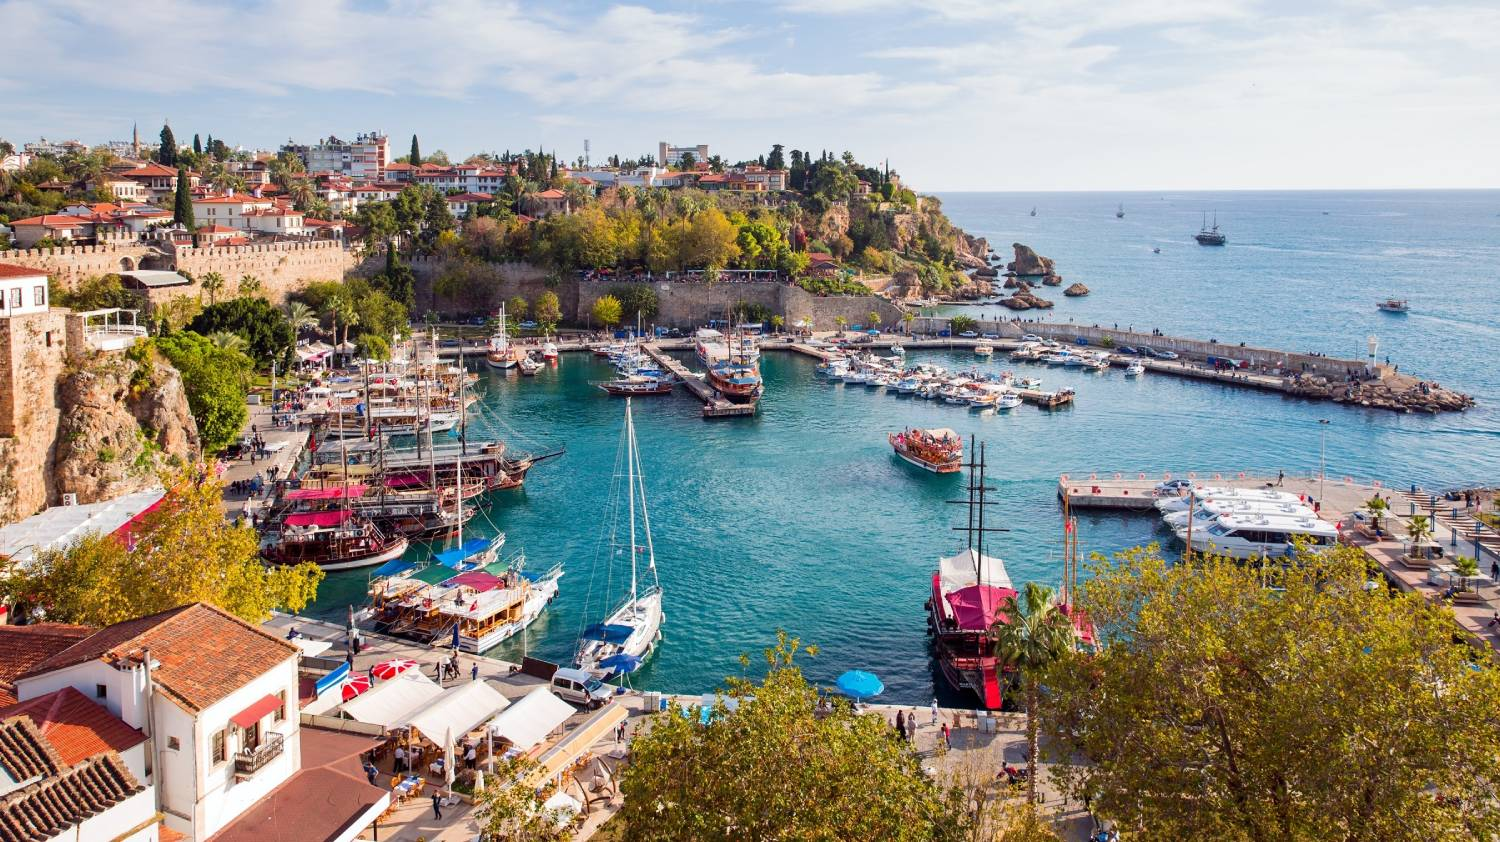 Antalya - The Best Places To Visit In Turkey